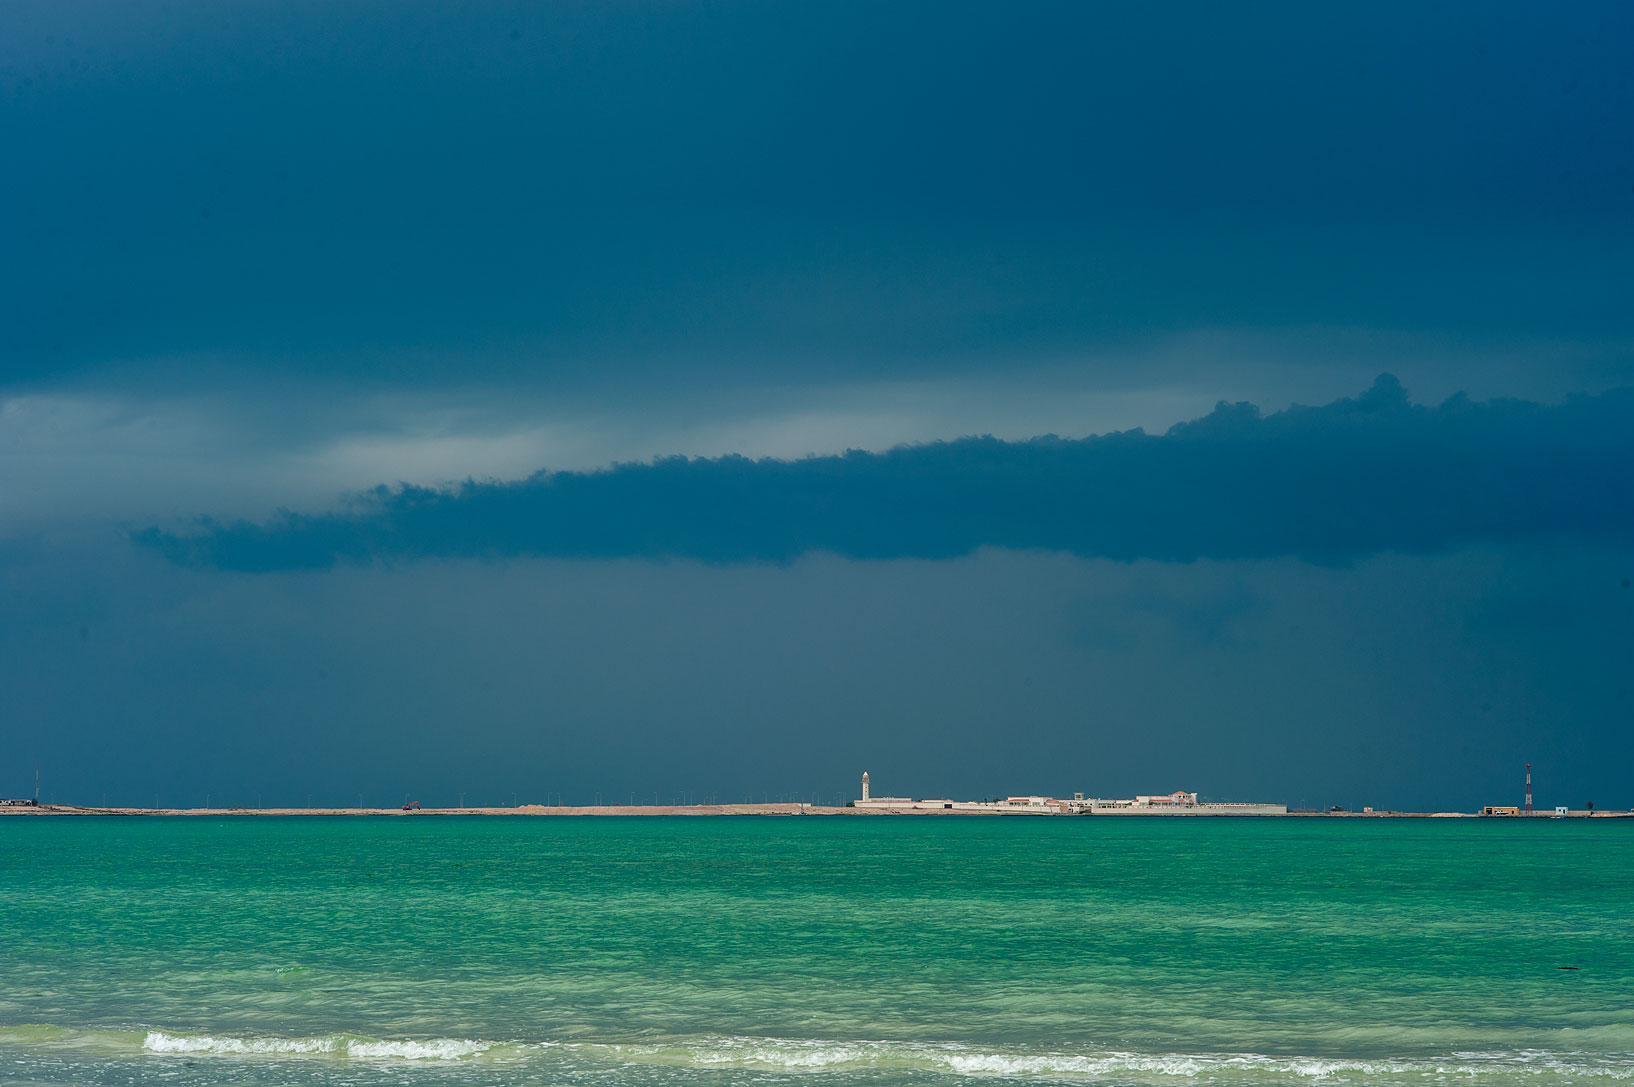 Thunderstorm clouds from a beach of Zubara archeological site. Northern Qatar